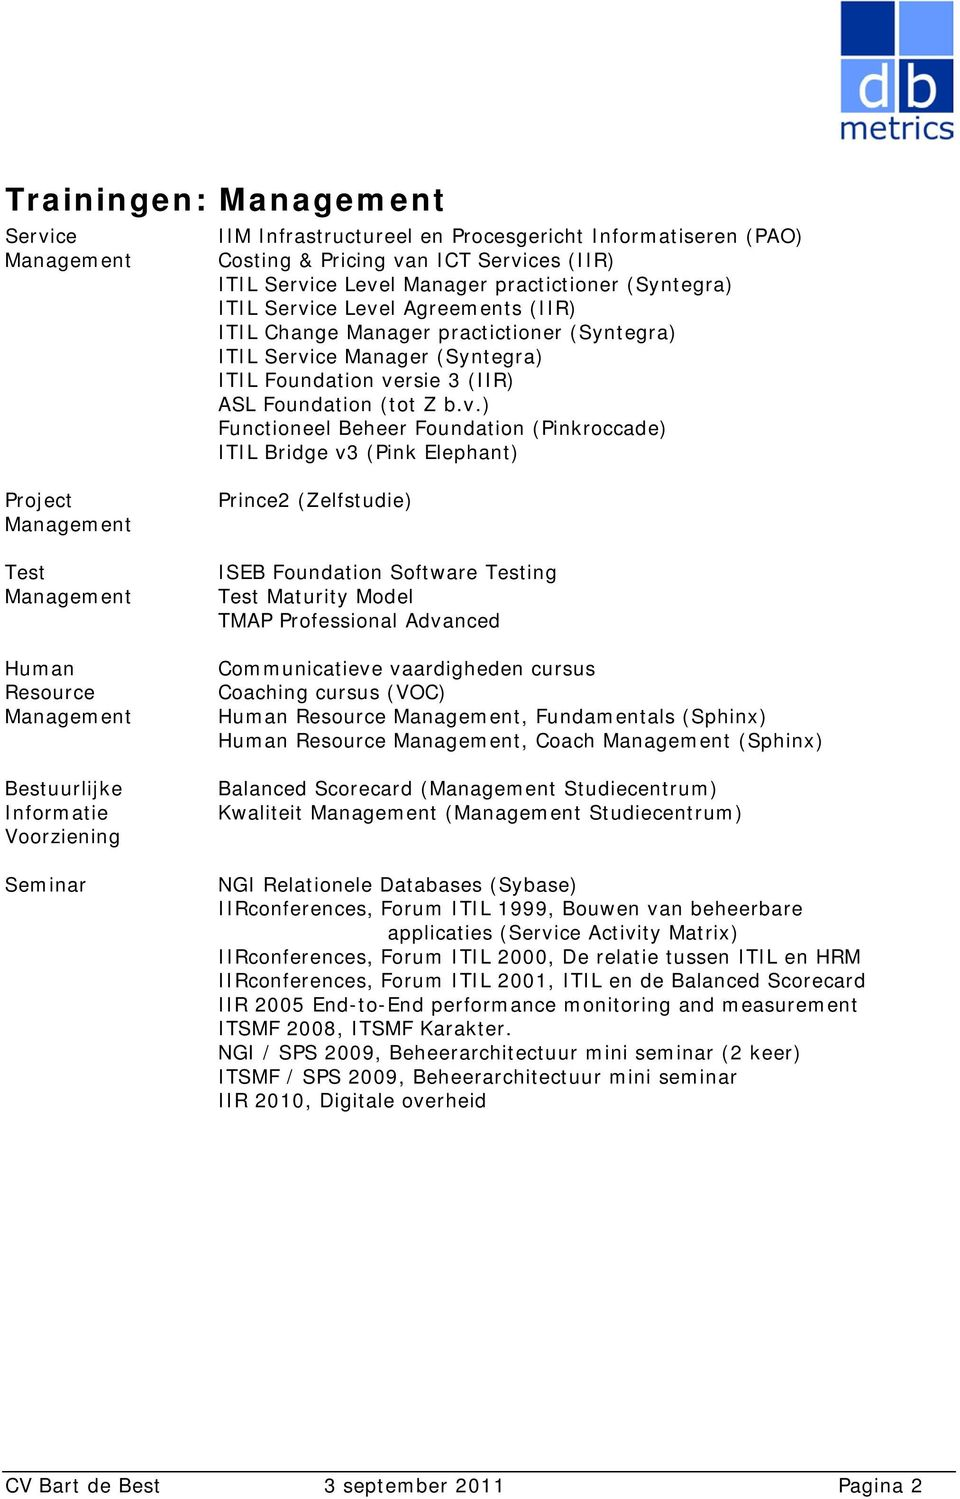 ce Manager (Syntegra) ITIL Foundation ve